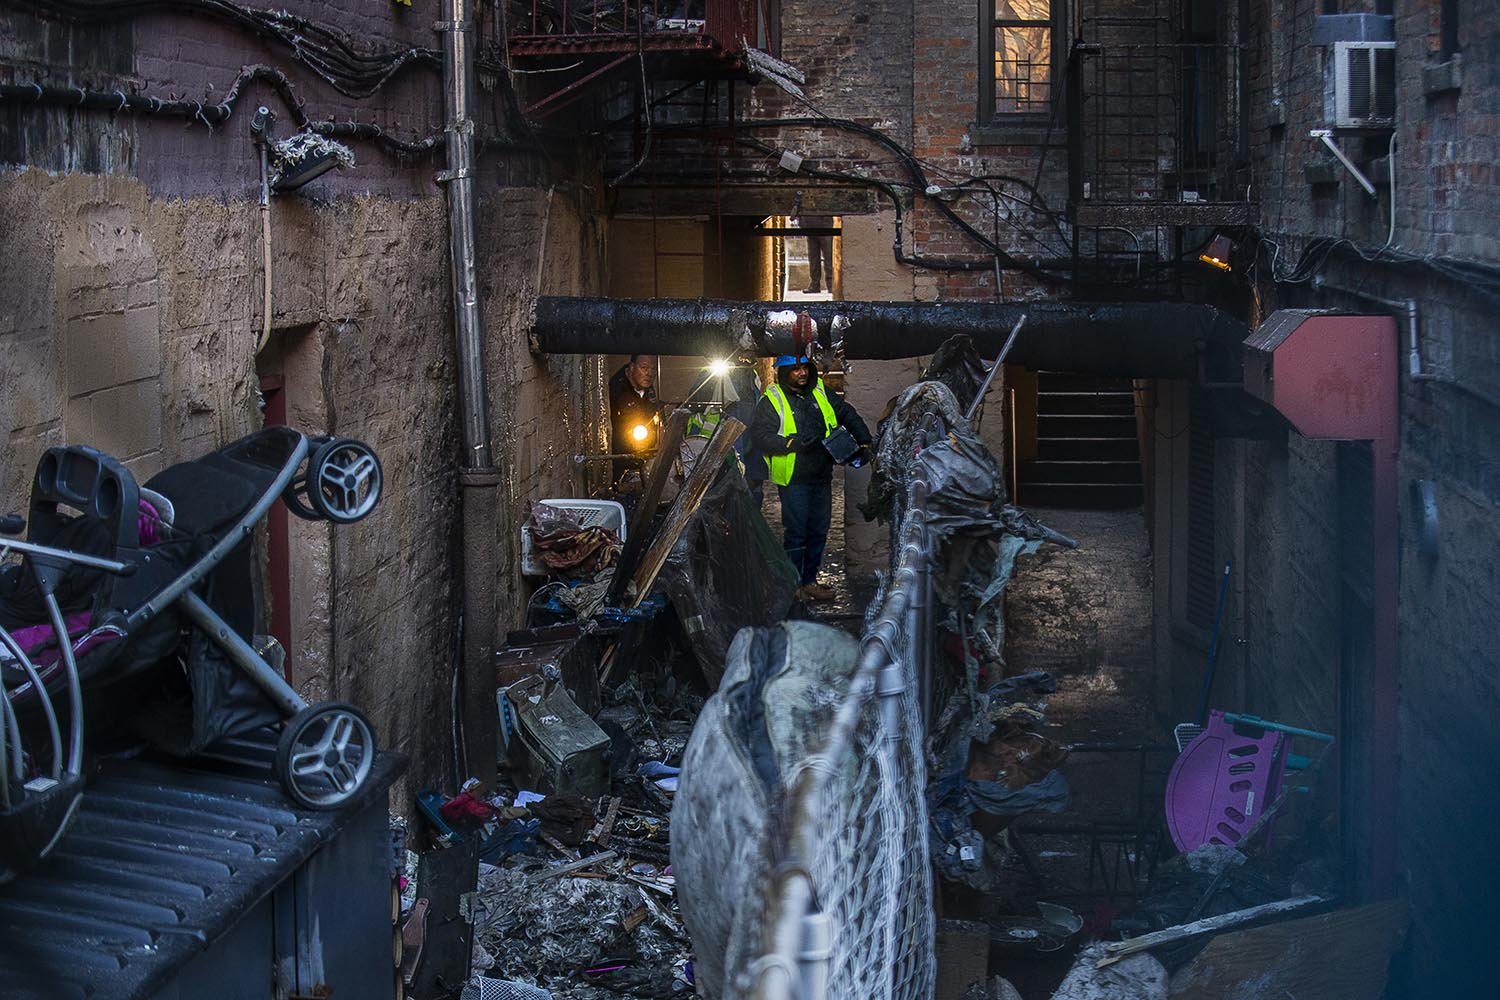 """<div class=""""meta image-caption""""><div class=""""origin-logo origin-image ap""""><span>AP</span></div><span class=""""caption-text"""">Police and workers inspect the building Friday, Dec. 29, 2017, where more than 10 people died in a fire in the Bronx borough of New York. (AP Photo/Andres Kudacki)</span></div>"""